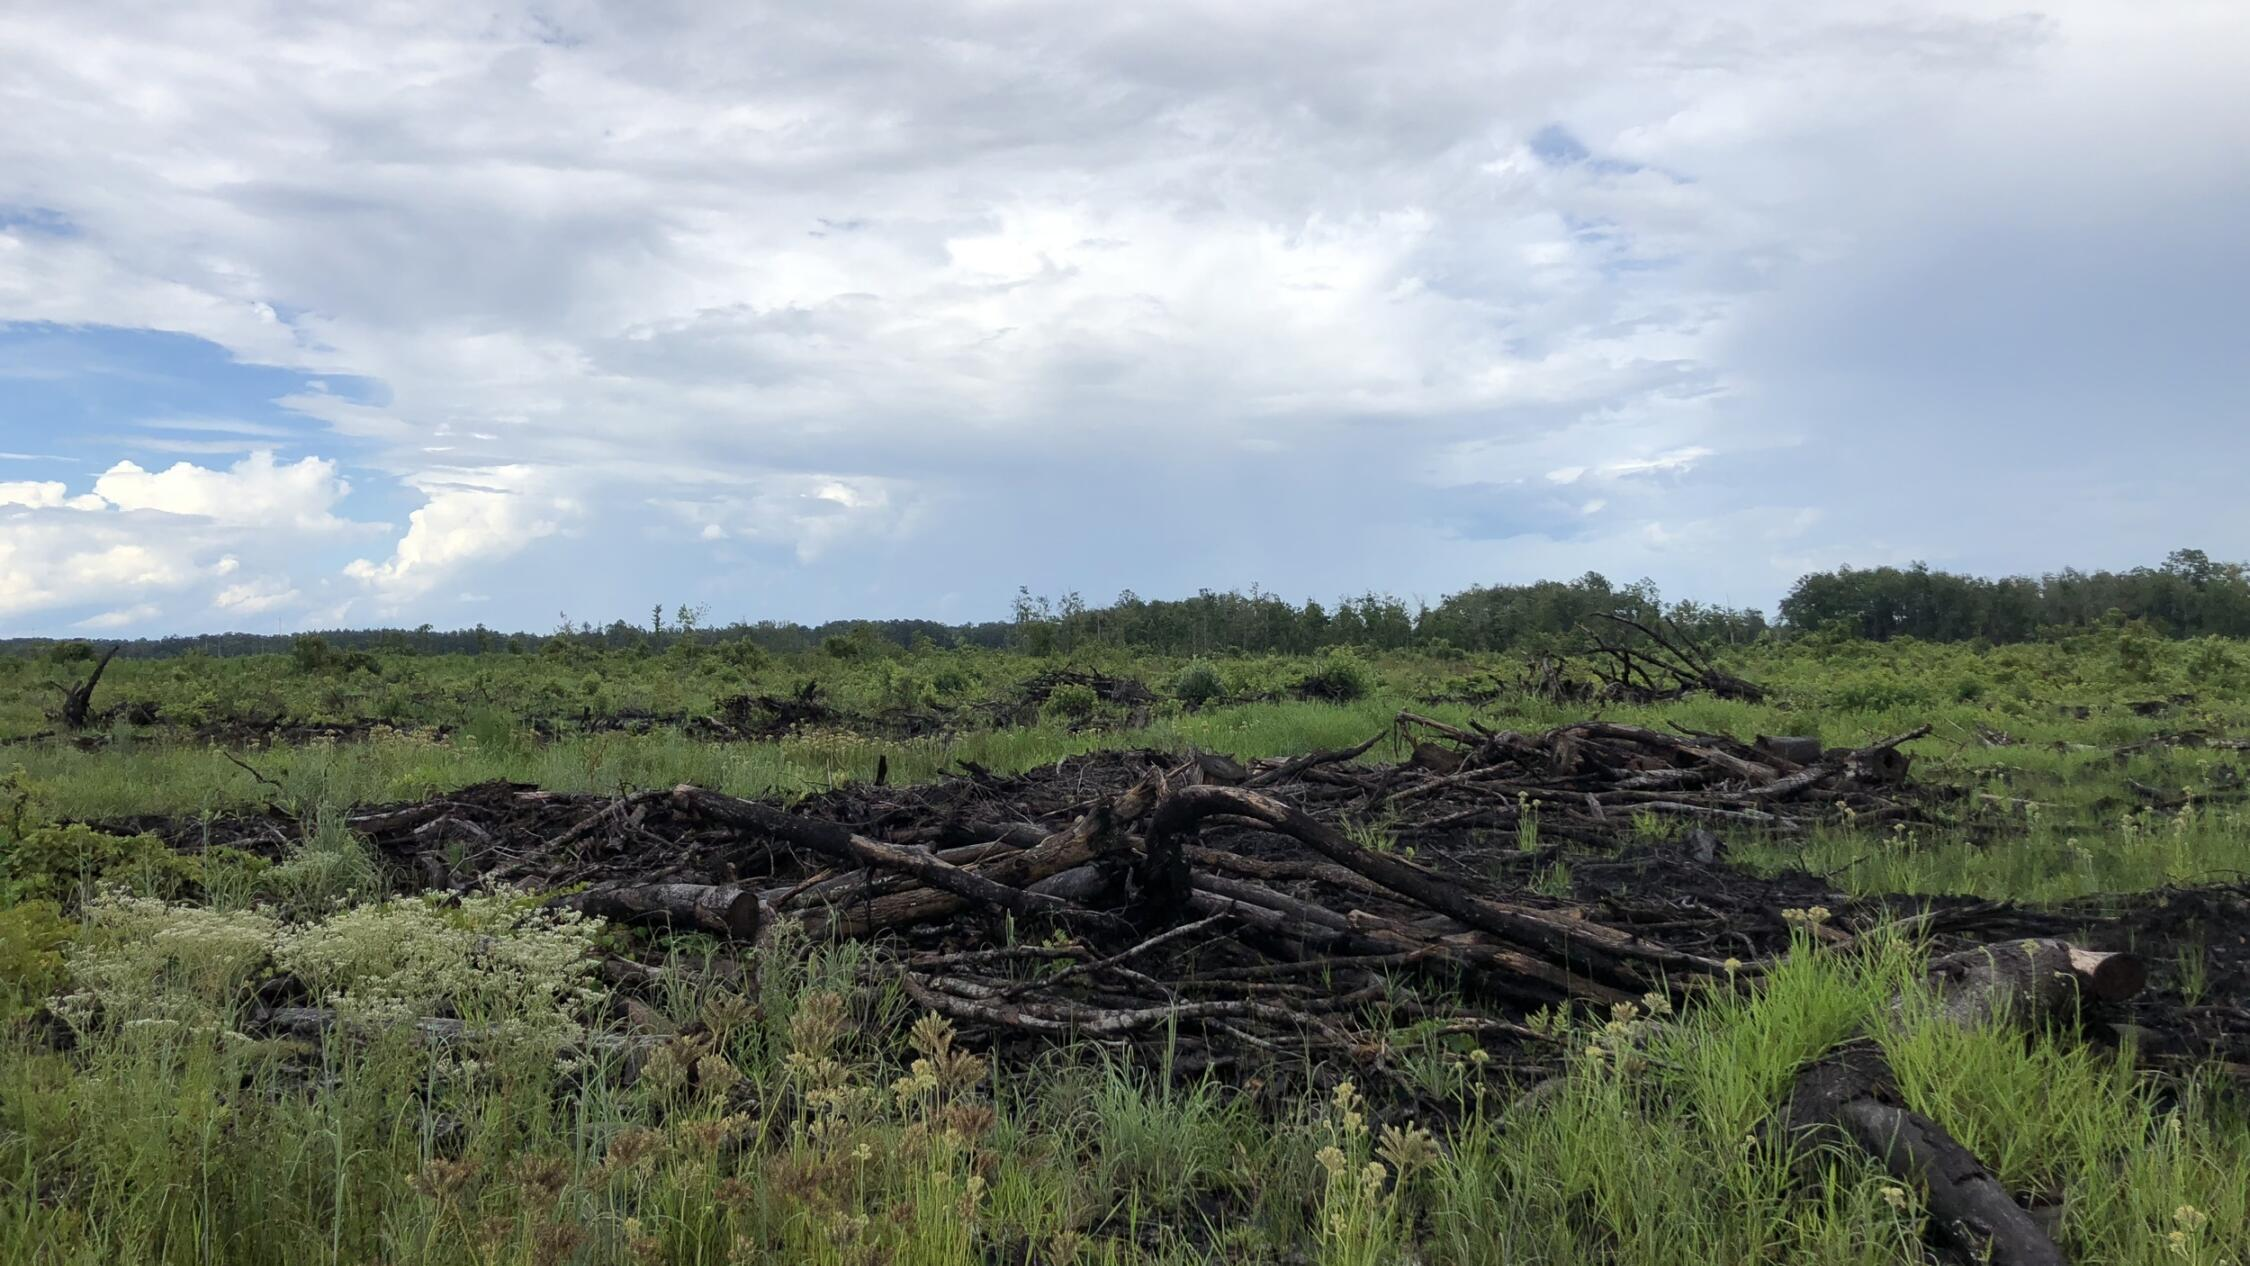 Lumber pile in grassy meadow